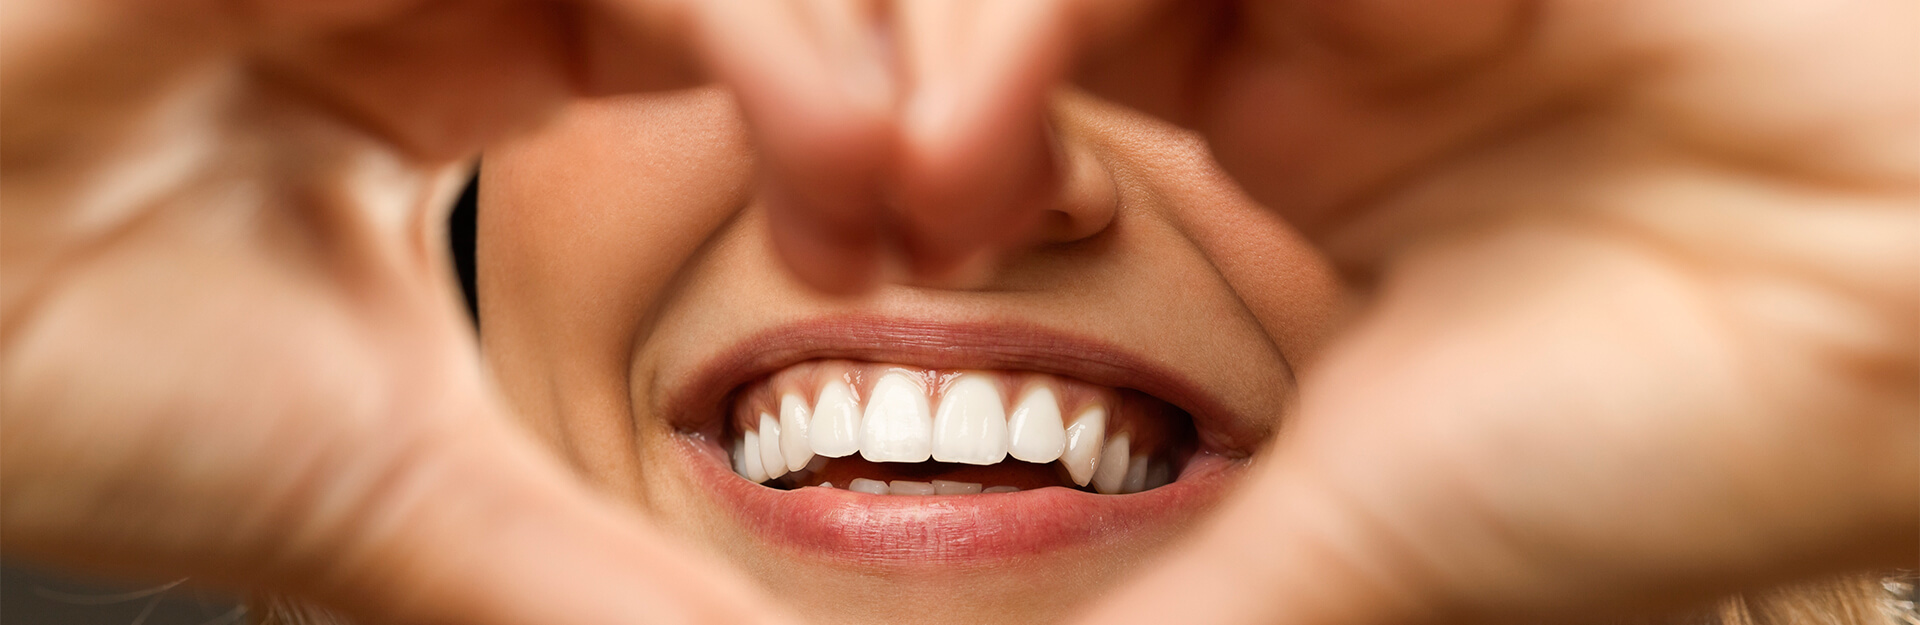 Want Whiter Teeth? You Have Options